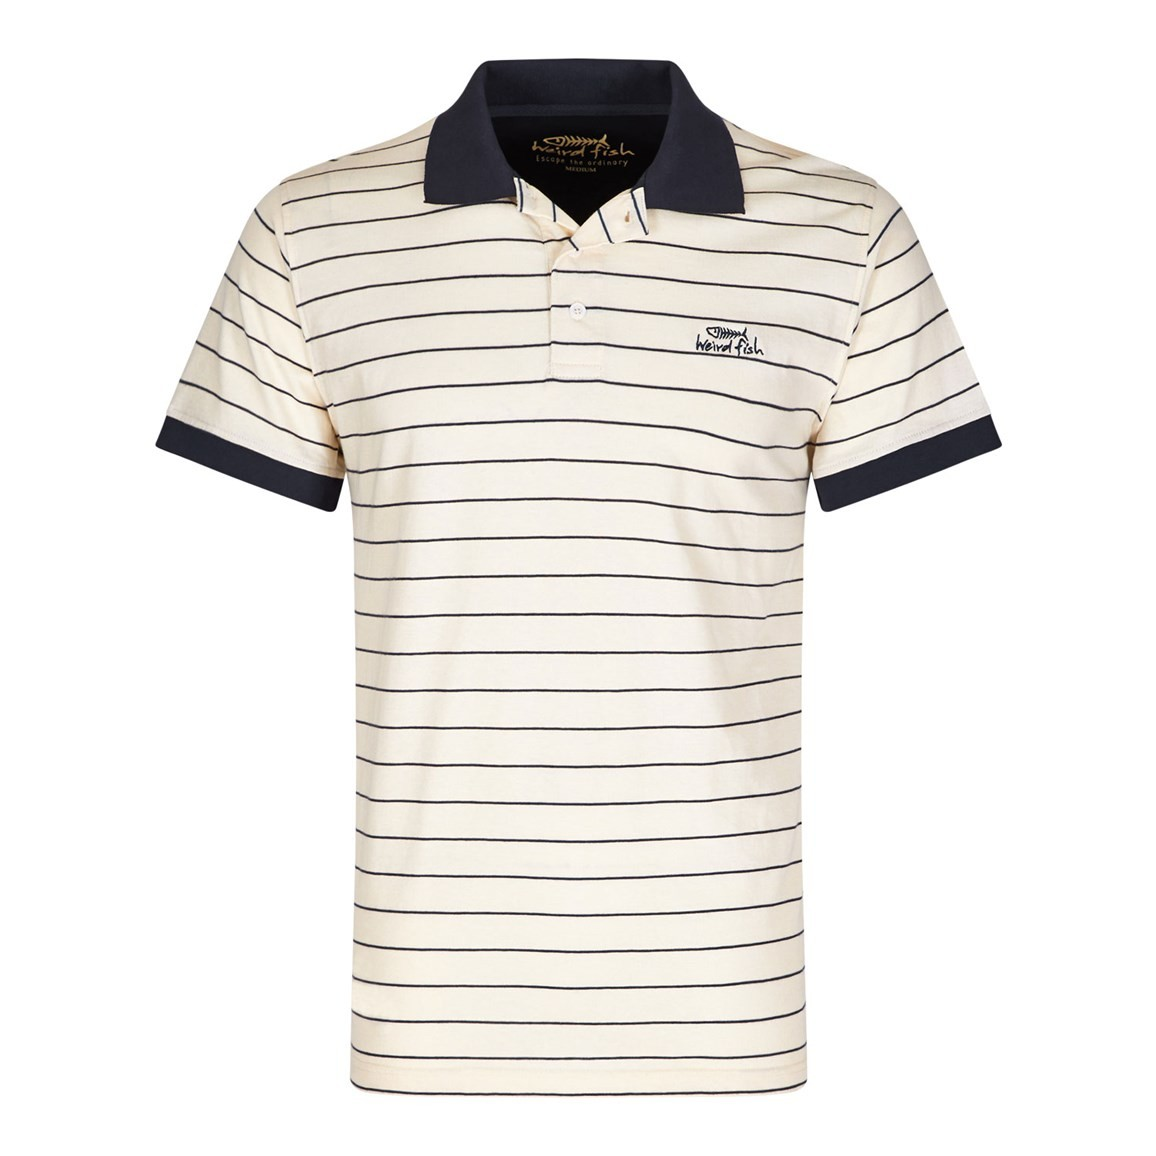 Image of Aerotech Thin Stripe Jersey Polo Shirt Cloud Cream